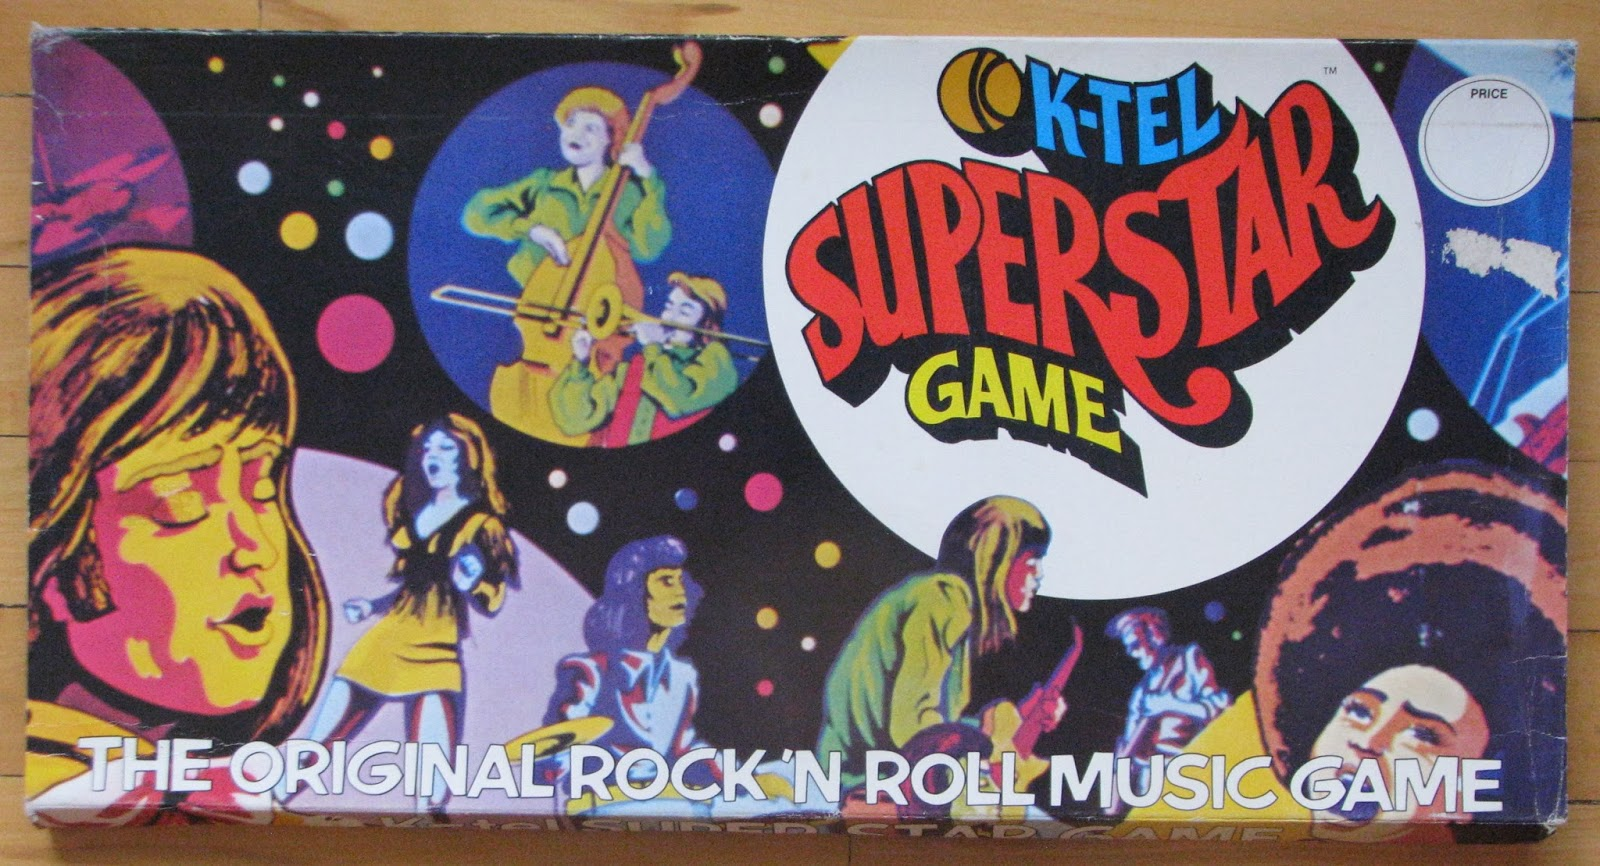 we will bury you k tel superstar game